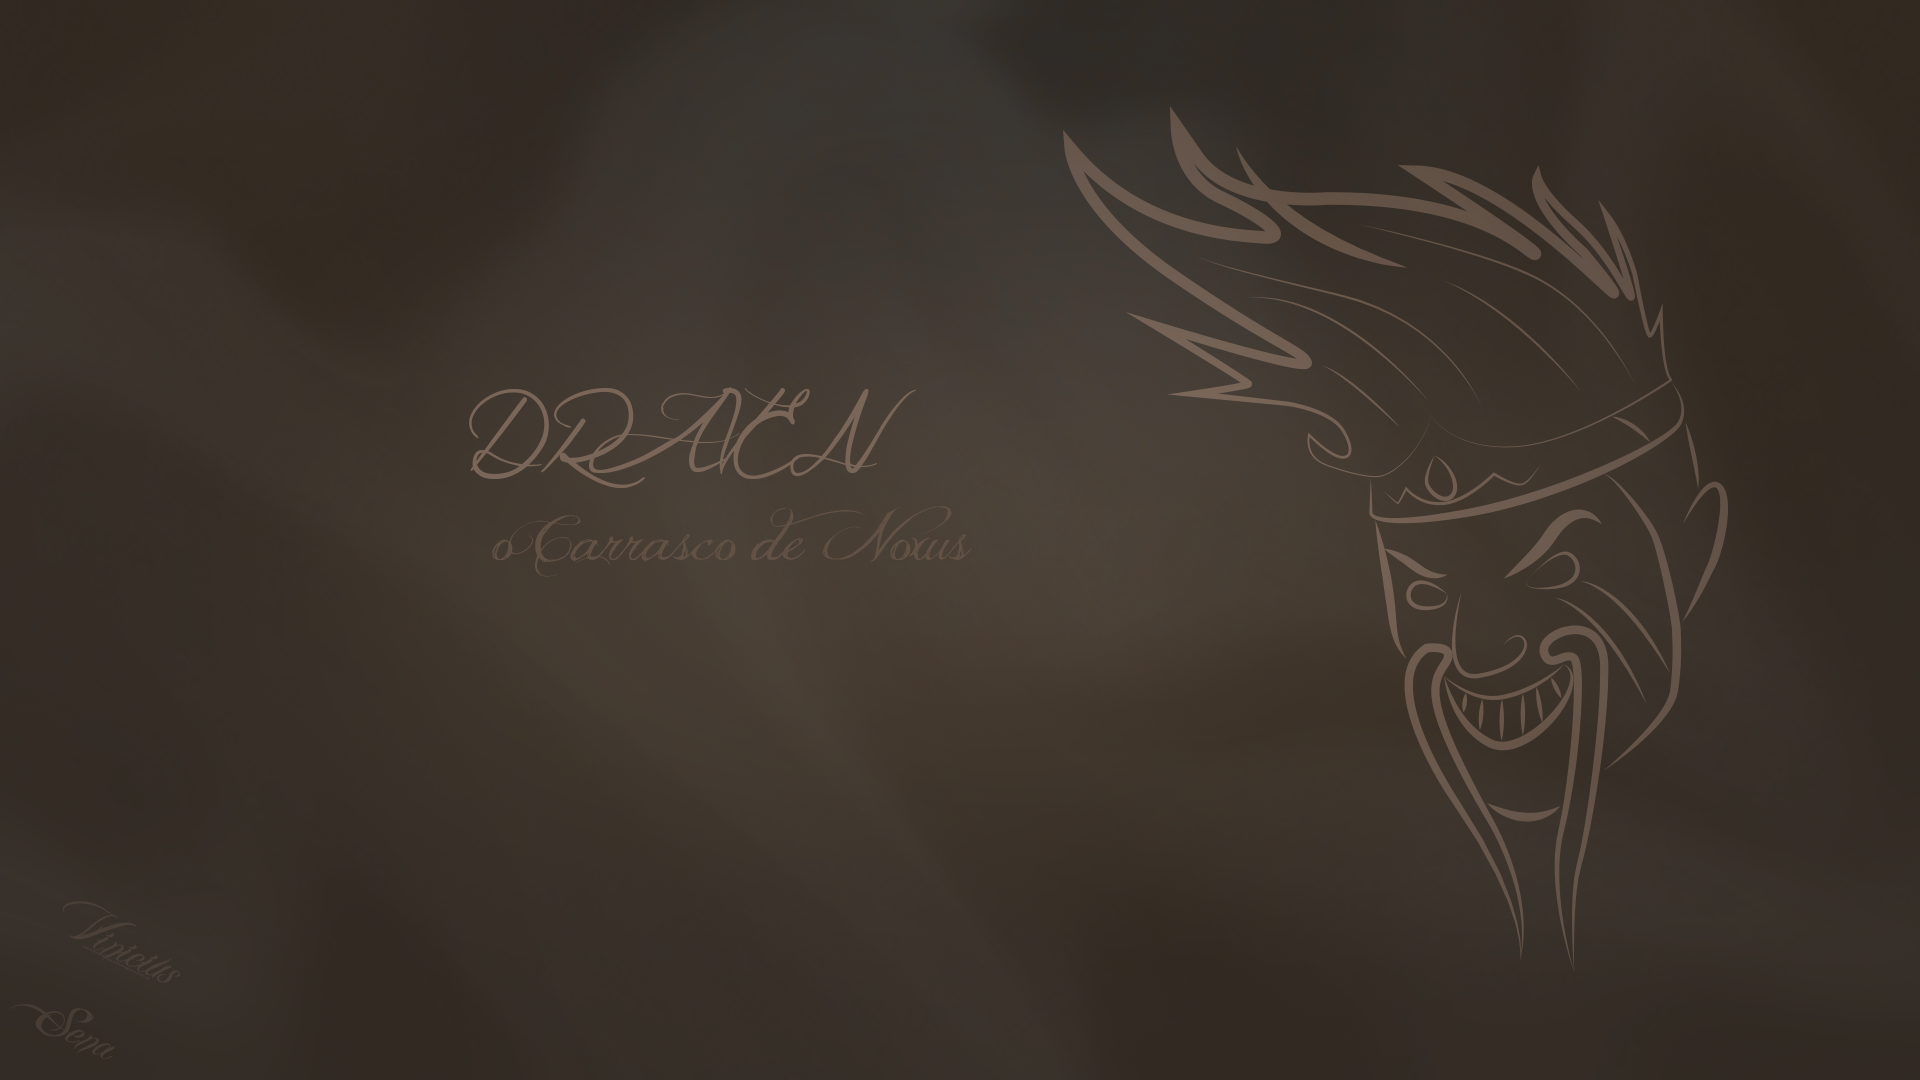 Draven wallpaper